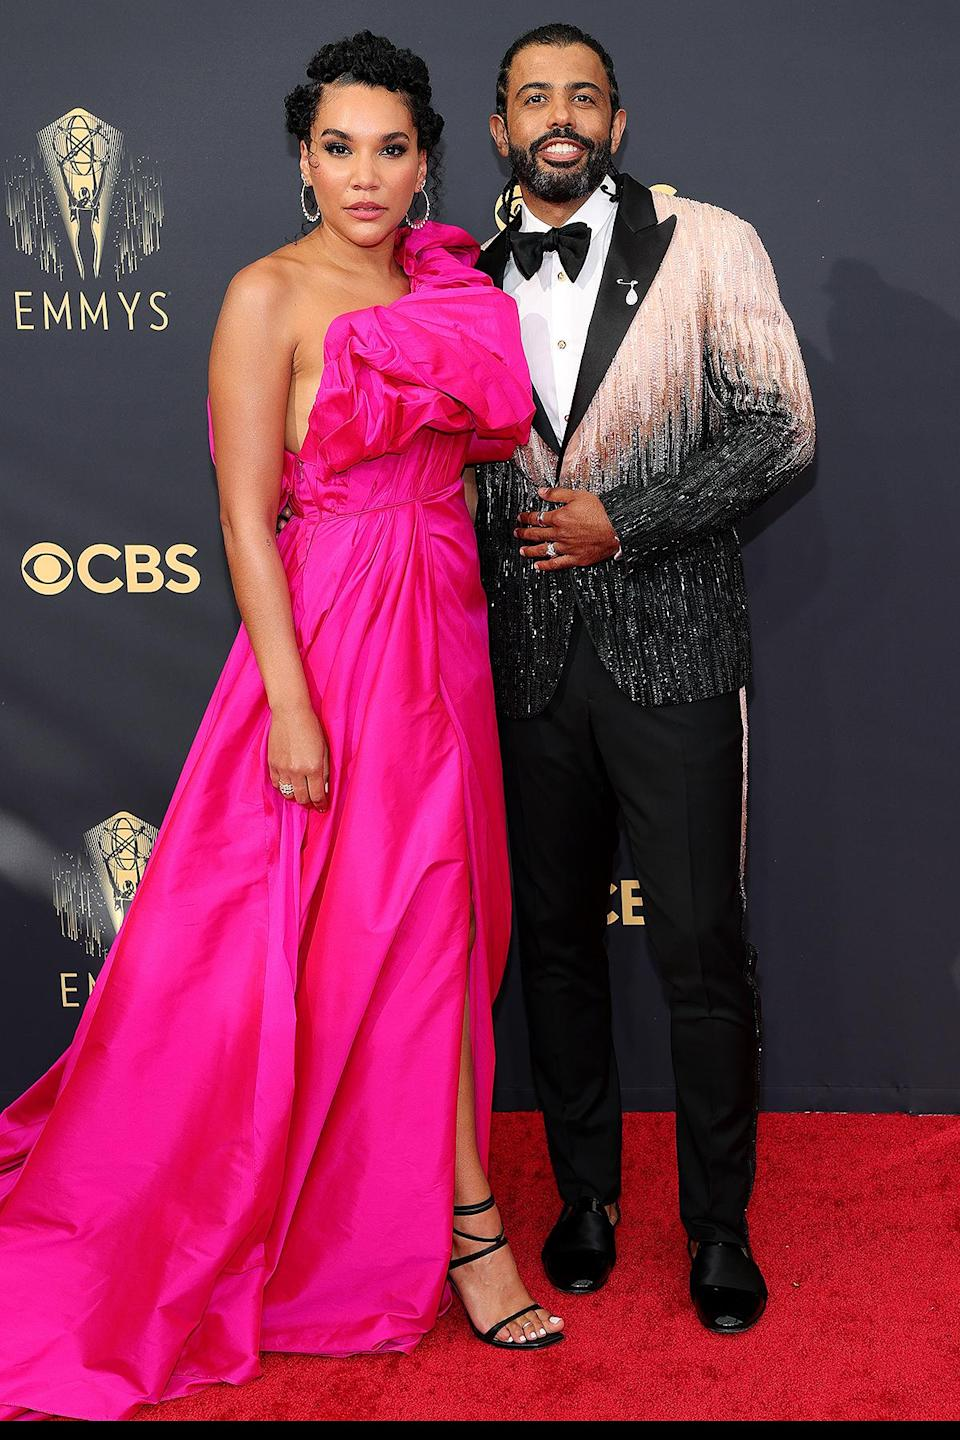 <p>The <em>Hamilton </em>star sparkled and shined on the red carpet in a beaded pink and black tux, matching his partner Emmy Raver-Lampman, who also opted for a pink look. </p>